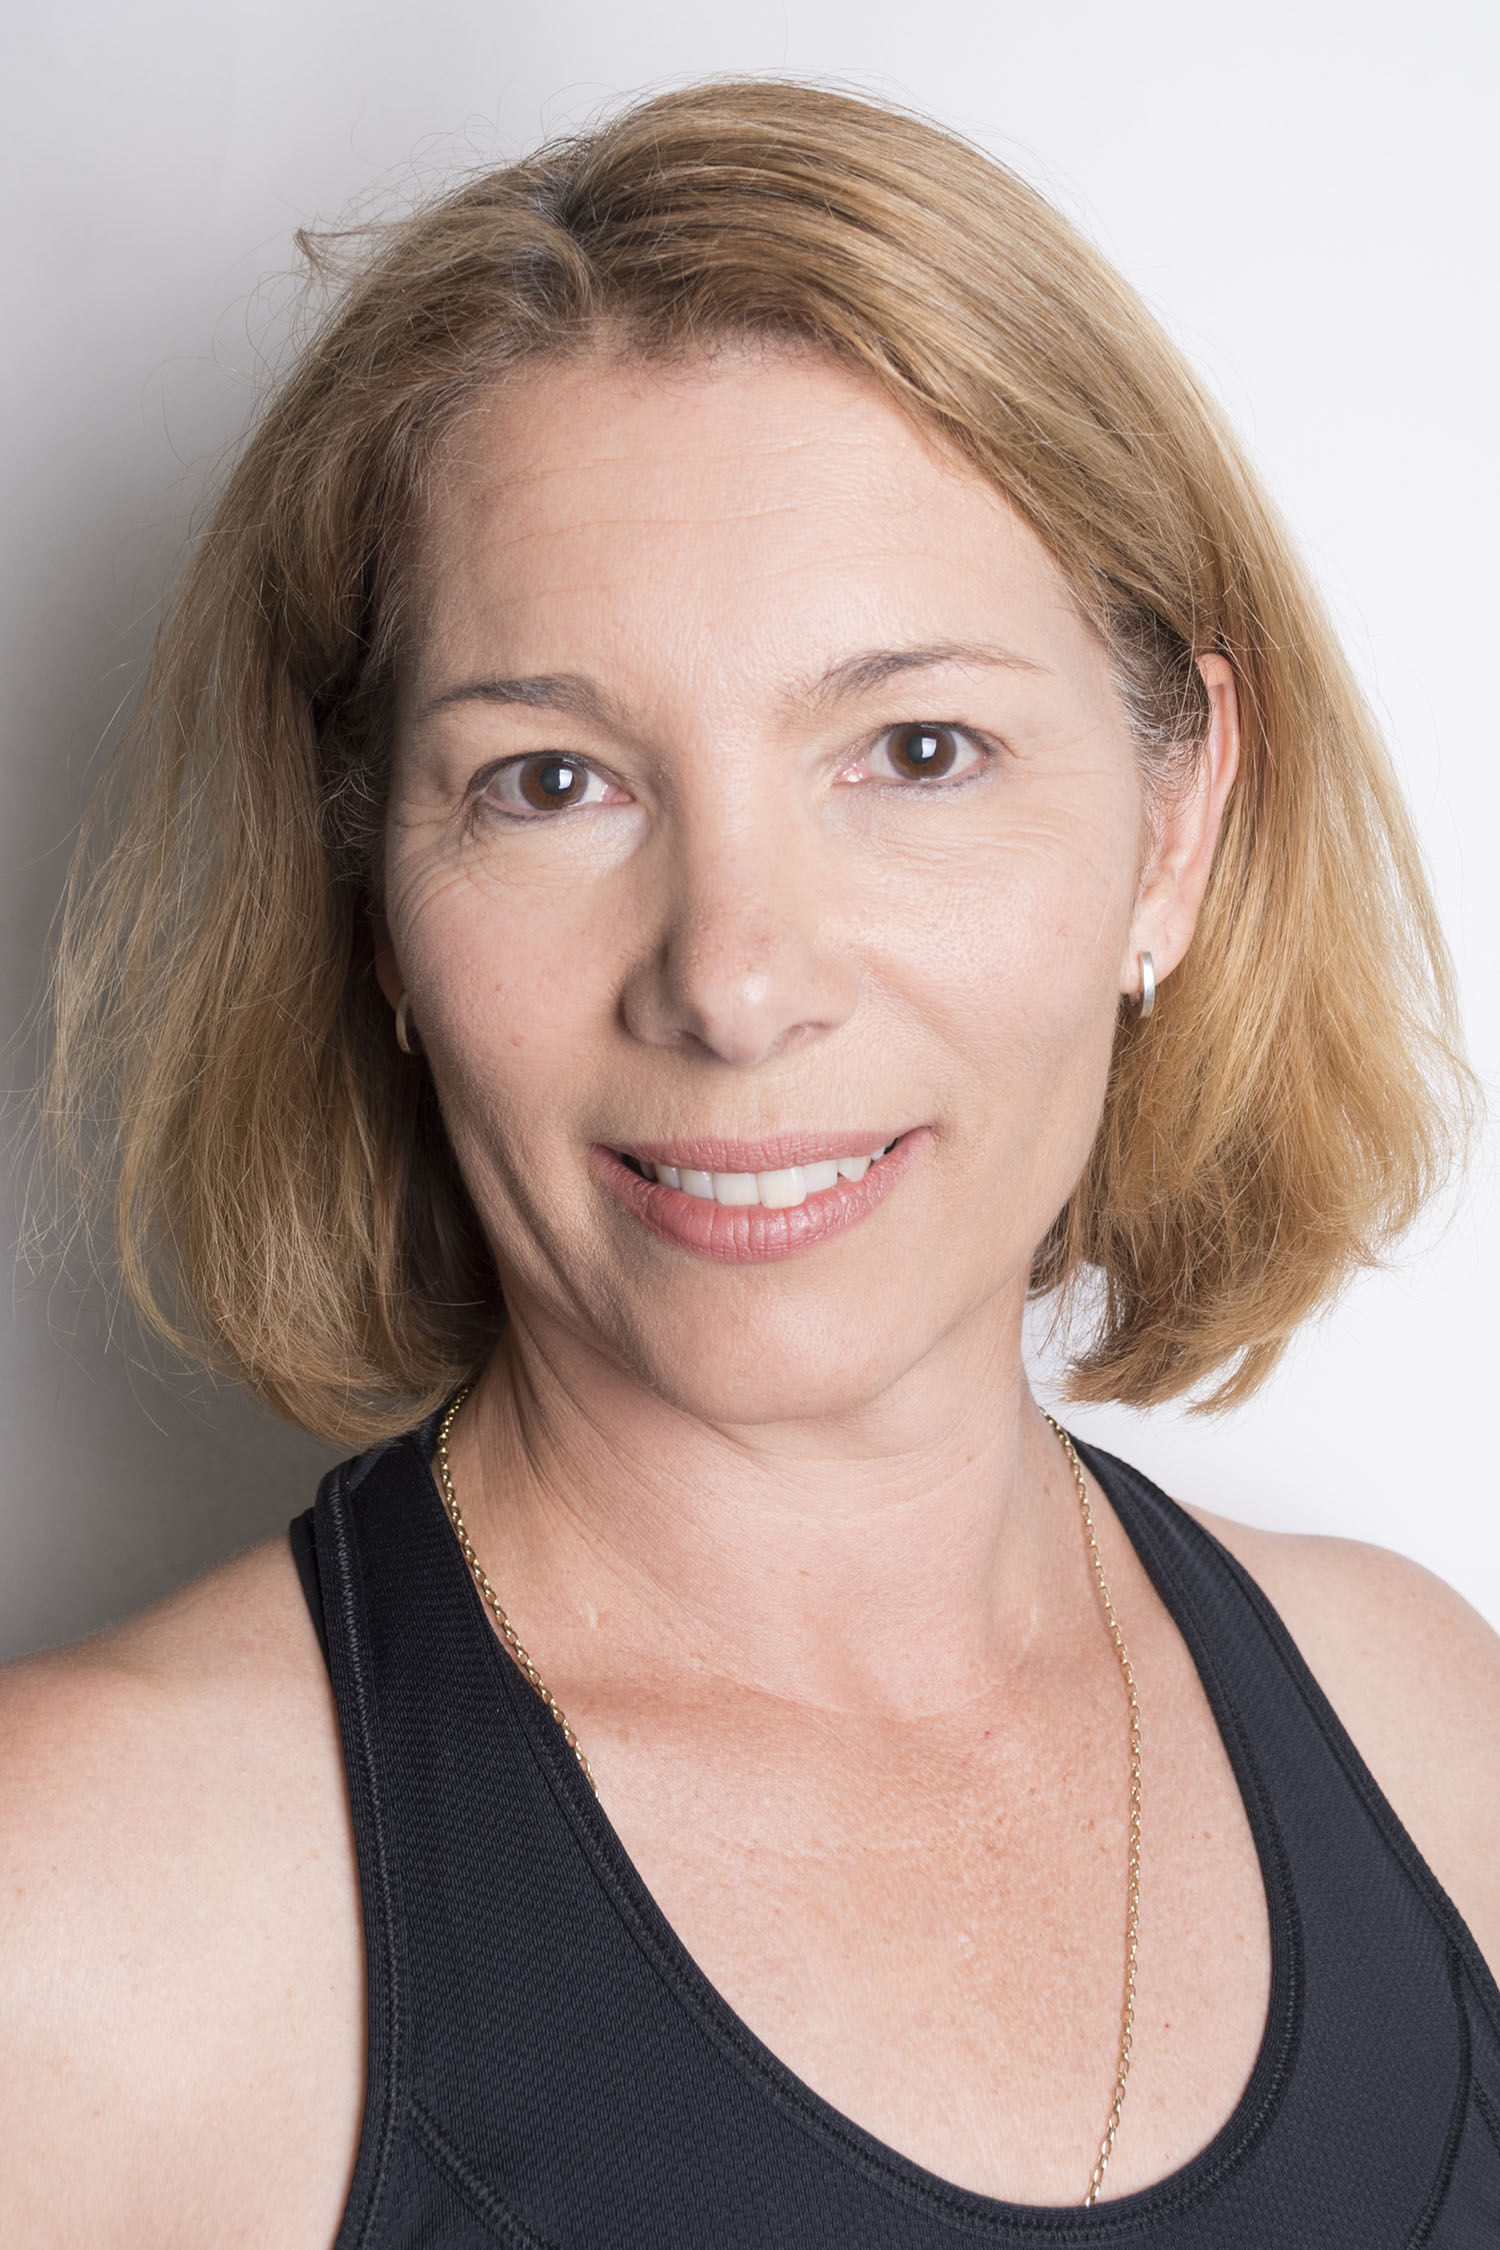 Natalie Southwell - Senior Instructor: Advanced Diploma of the Pilates Method, Buff Bones Instructor, TAEPilates became an integral part of my life after debilitating pain had a significant impact on my work and family. It was part of the solution to ensuring a return to an active, enjoyable lifestyle that includes time with my gorgeous granddaughter.I knew Pilates was going to be part of my ongoing health and wellbeing and with my love of teaching people of all ages, it was an obvious step to be an instructor.In 2010, I completed my Matwork certification. In 2013, I completed my Diploma of Pilates to become a studio instructor. I have since furthered my knowledge with my Buff Bones Certification and in 2018, I completed my Advanced Diploma. I have completed my TAE in 2019 and joined the PilatesITC faculty to teach others becoming Pilates instructors.Pilates inspires me: it focuses the mind and body to create movement that is functional, challenging and restorative. I love sharing with clients the journey on which Pilates takes the individual.